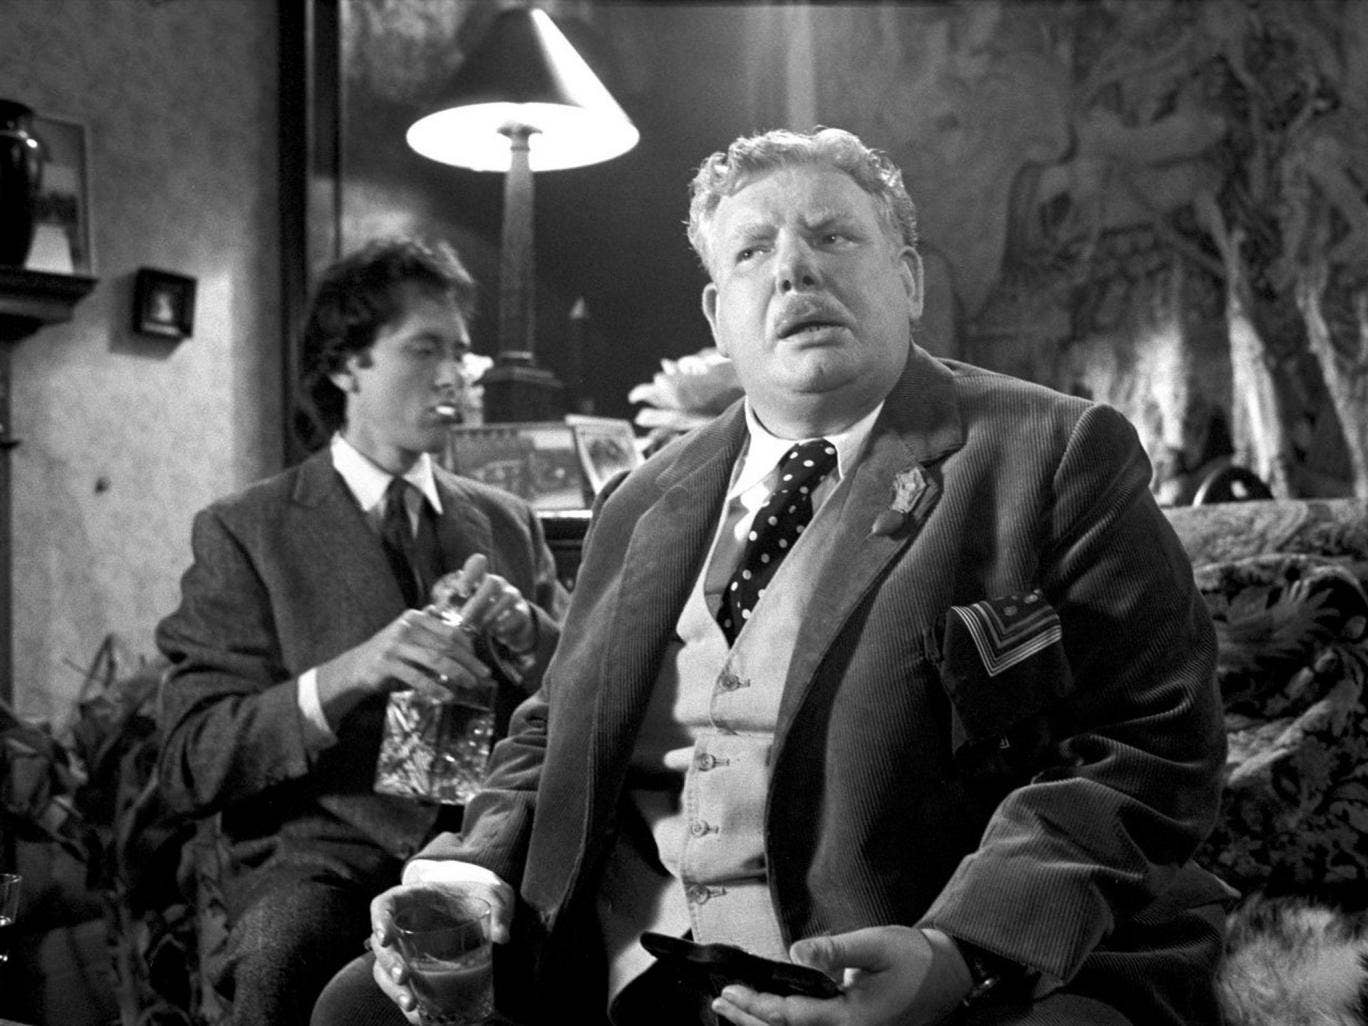 Richard Griffiths in Withnail and I alongside Richard E Grant (1987)